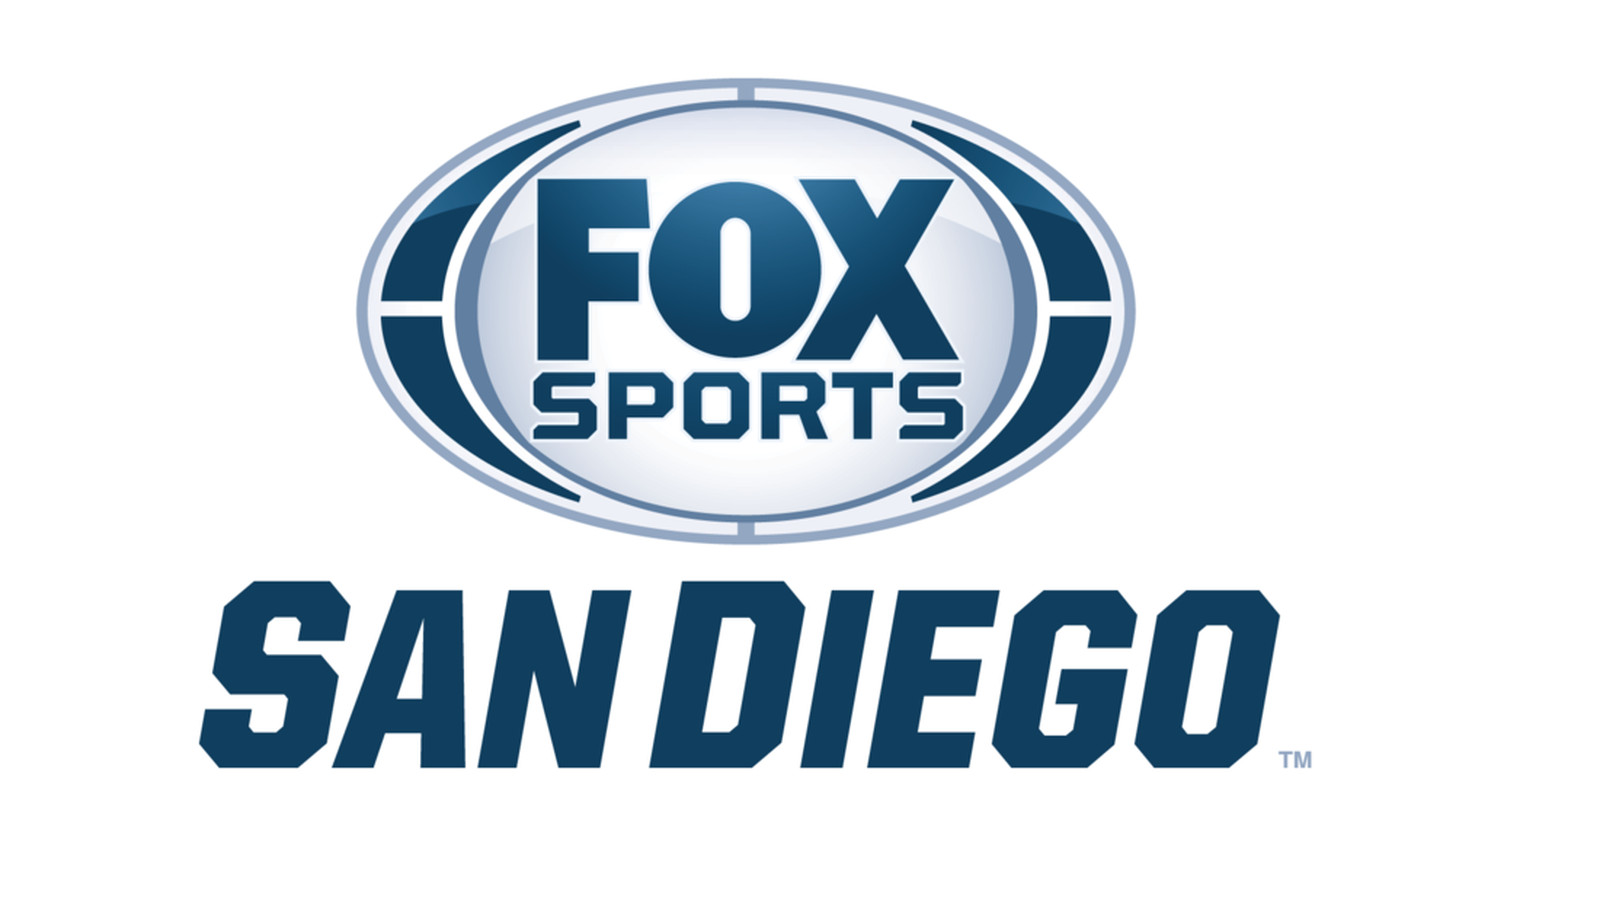 Fox Sports San Diego Studio Tour - Gaslamp Ball